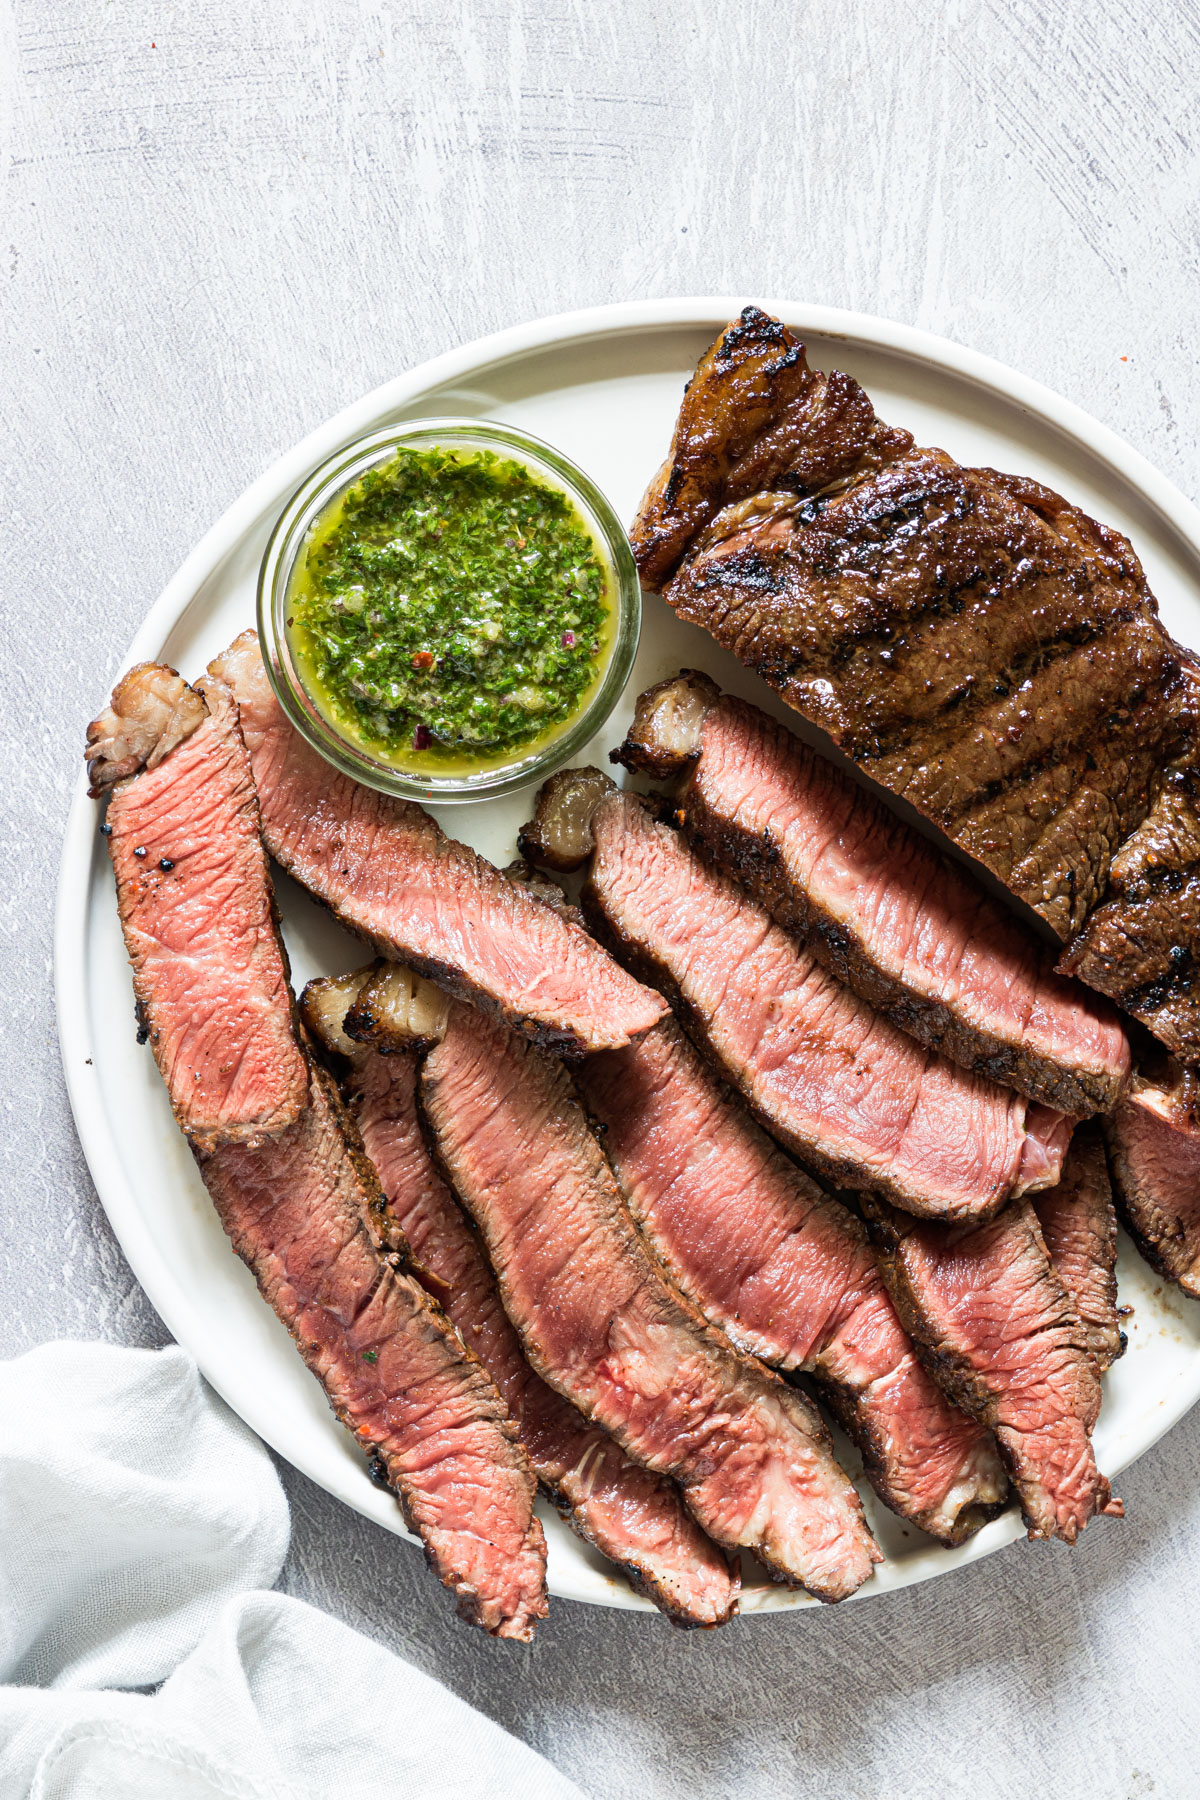 sliced grilled steak on a plate with chimichurri sauce